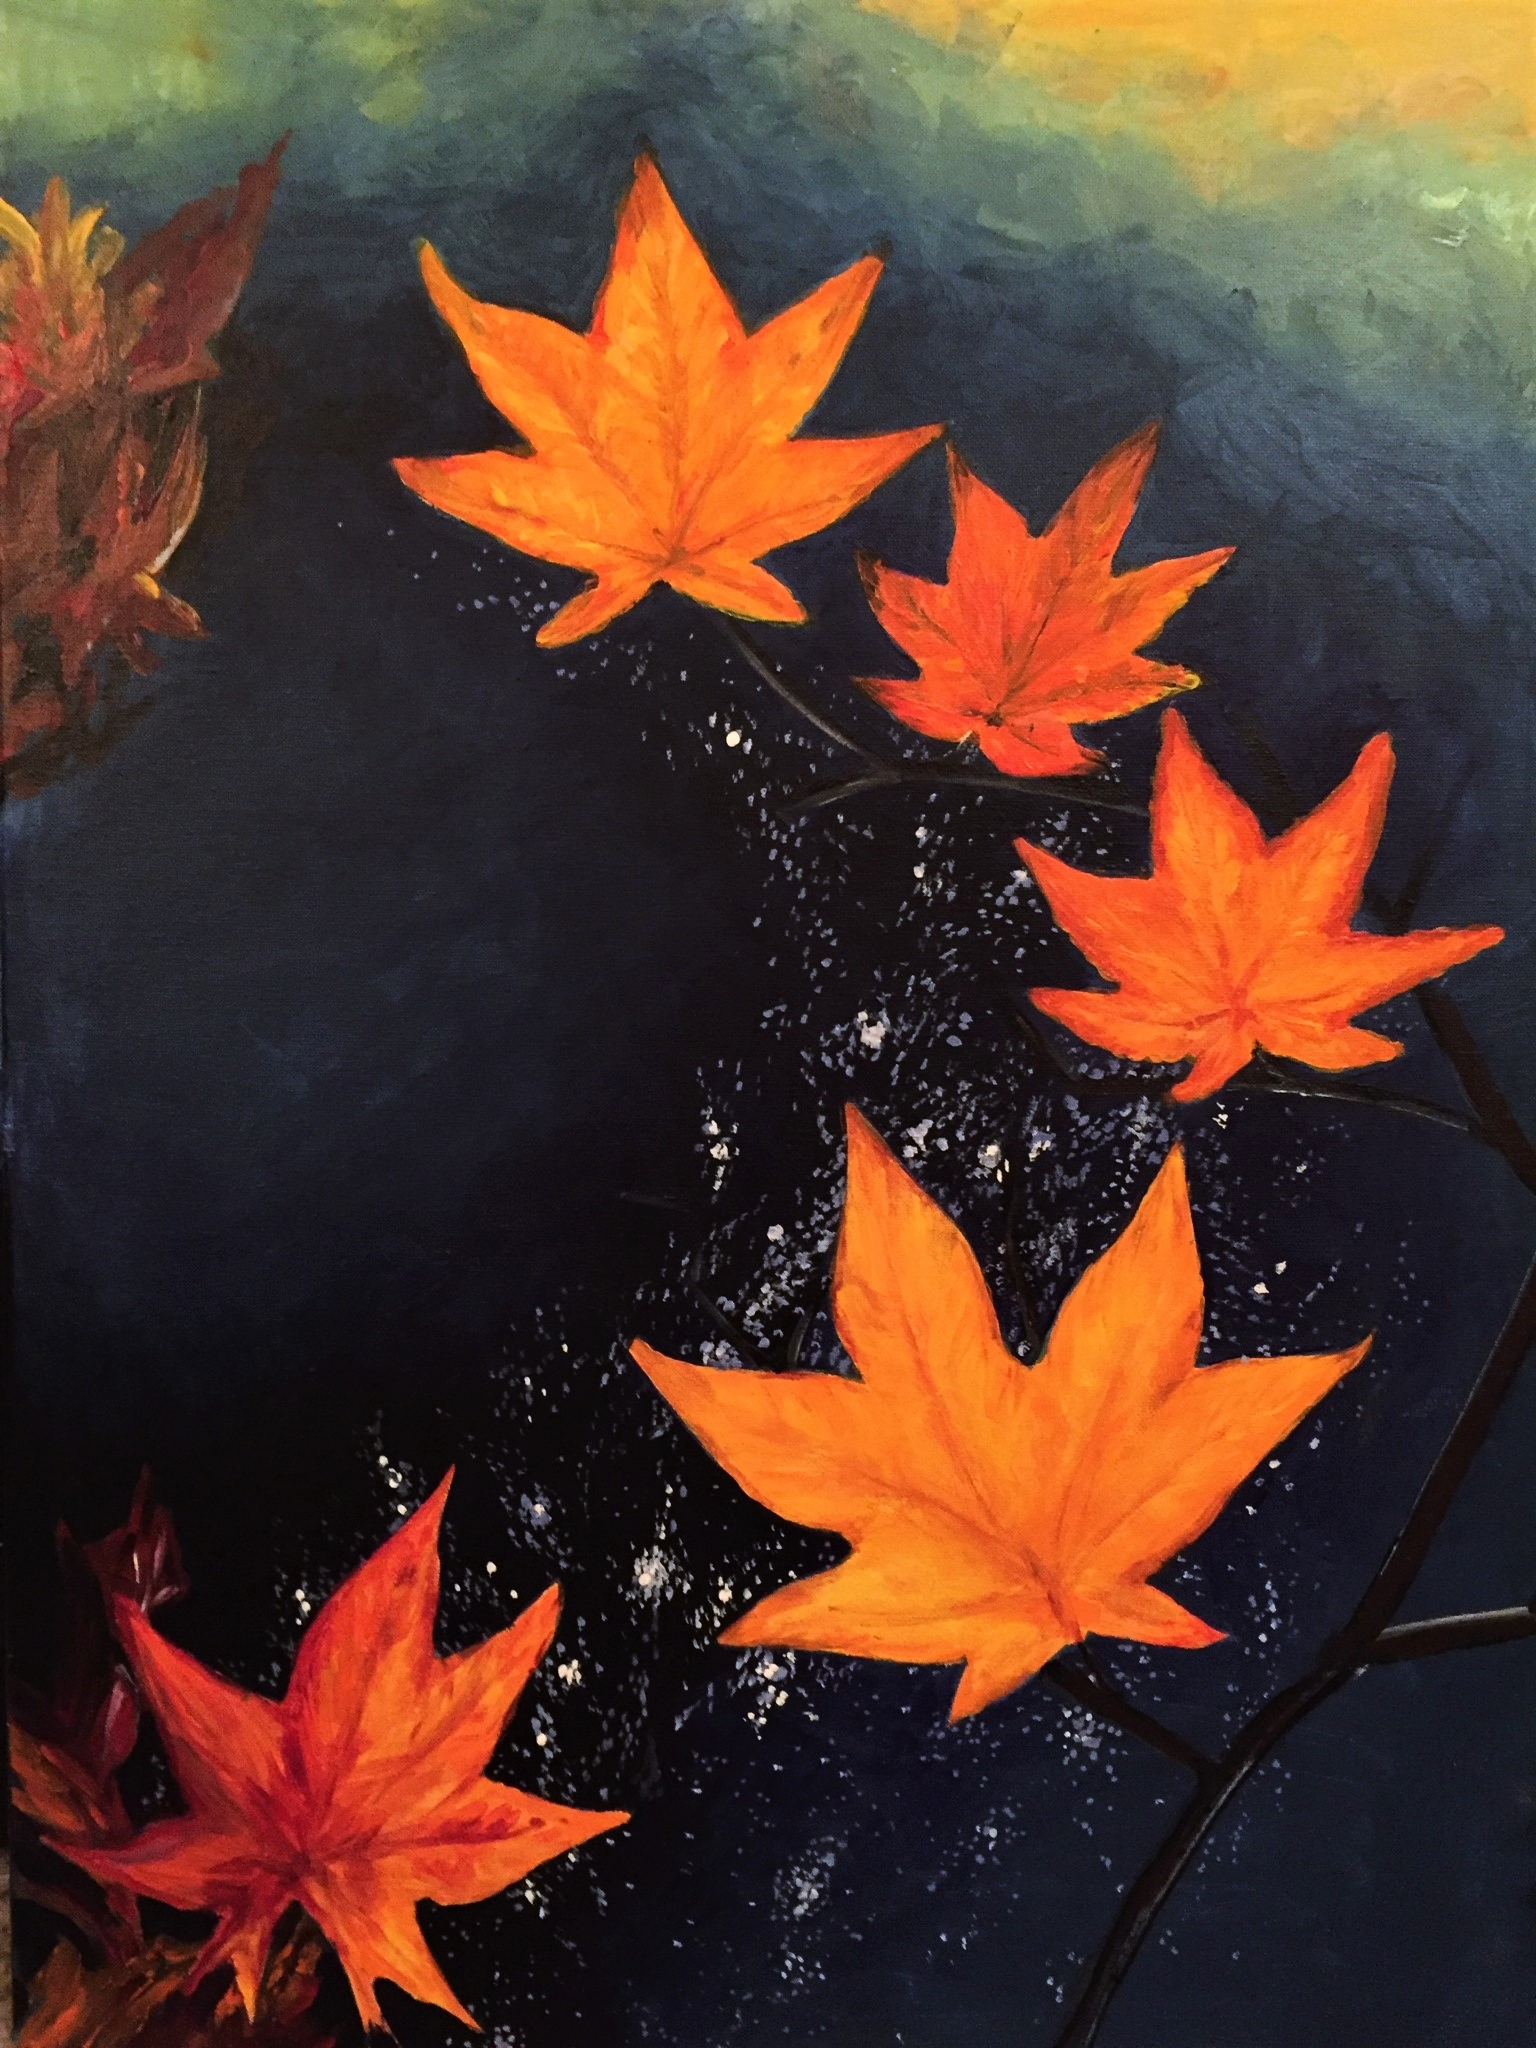 MAPLE LEAVES.....floating through a shimmery clear night sky.    18x 24       Fall 2015